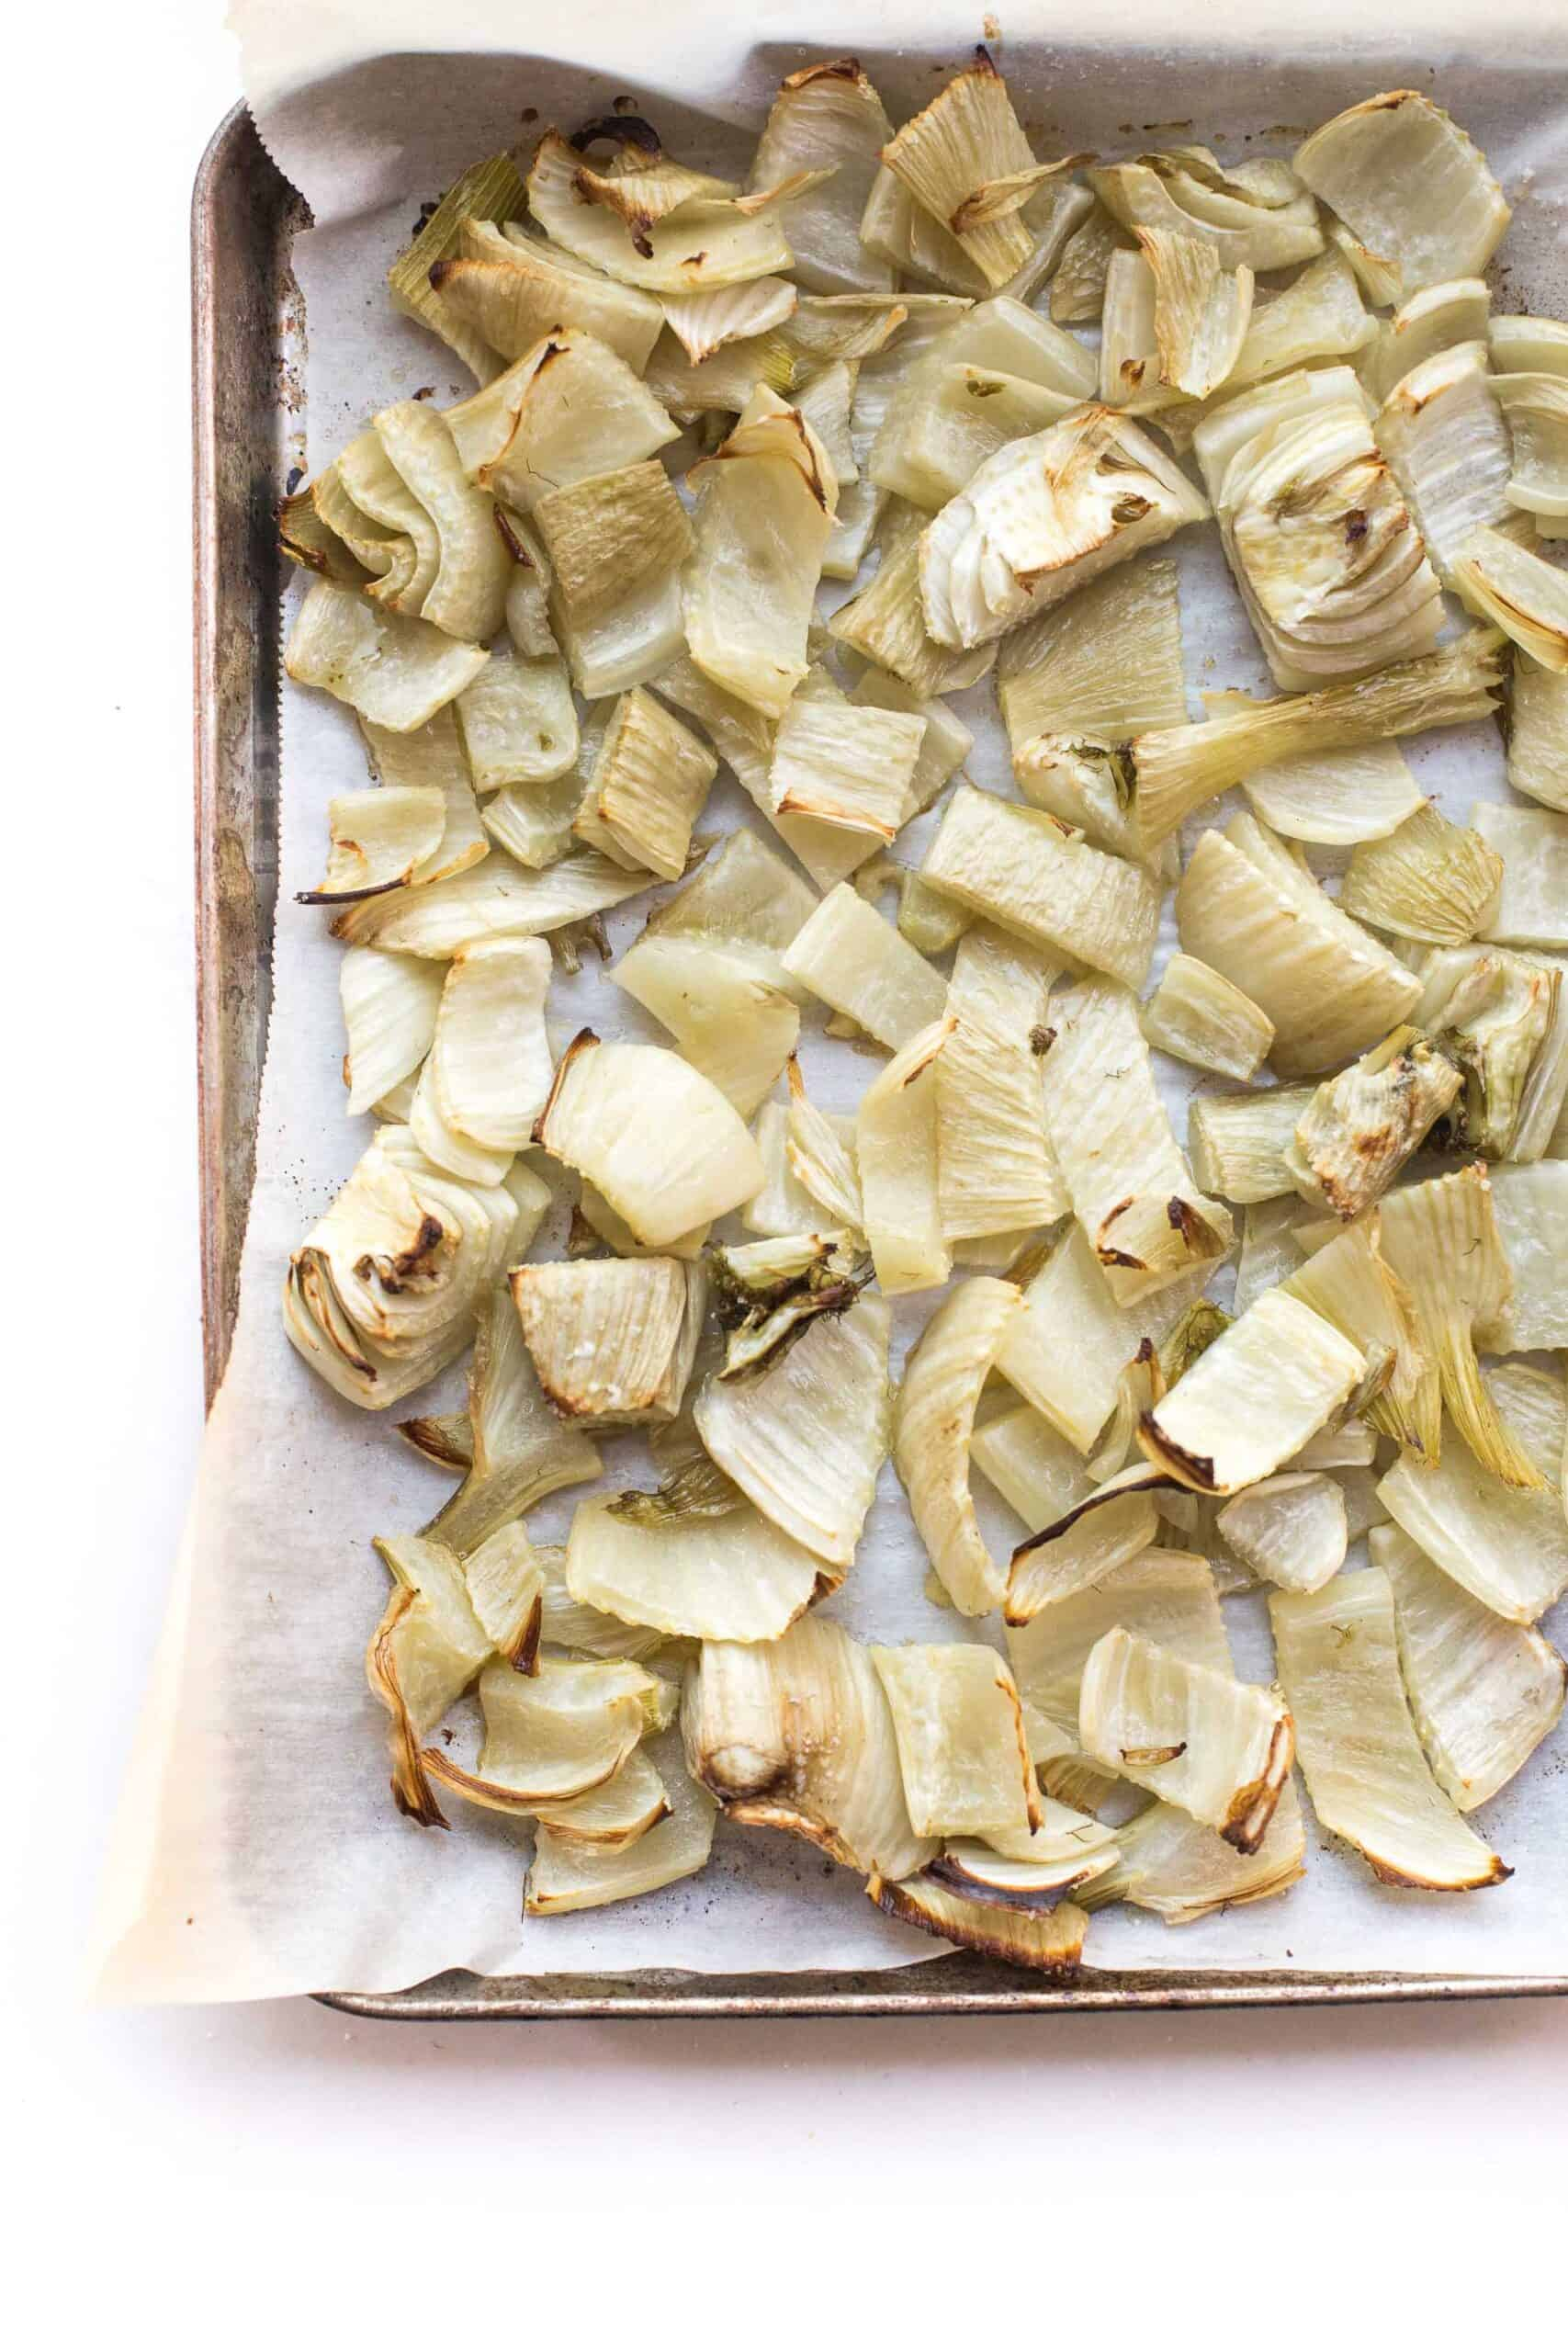 ROASTED FENNEL ON A SHEET PAN